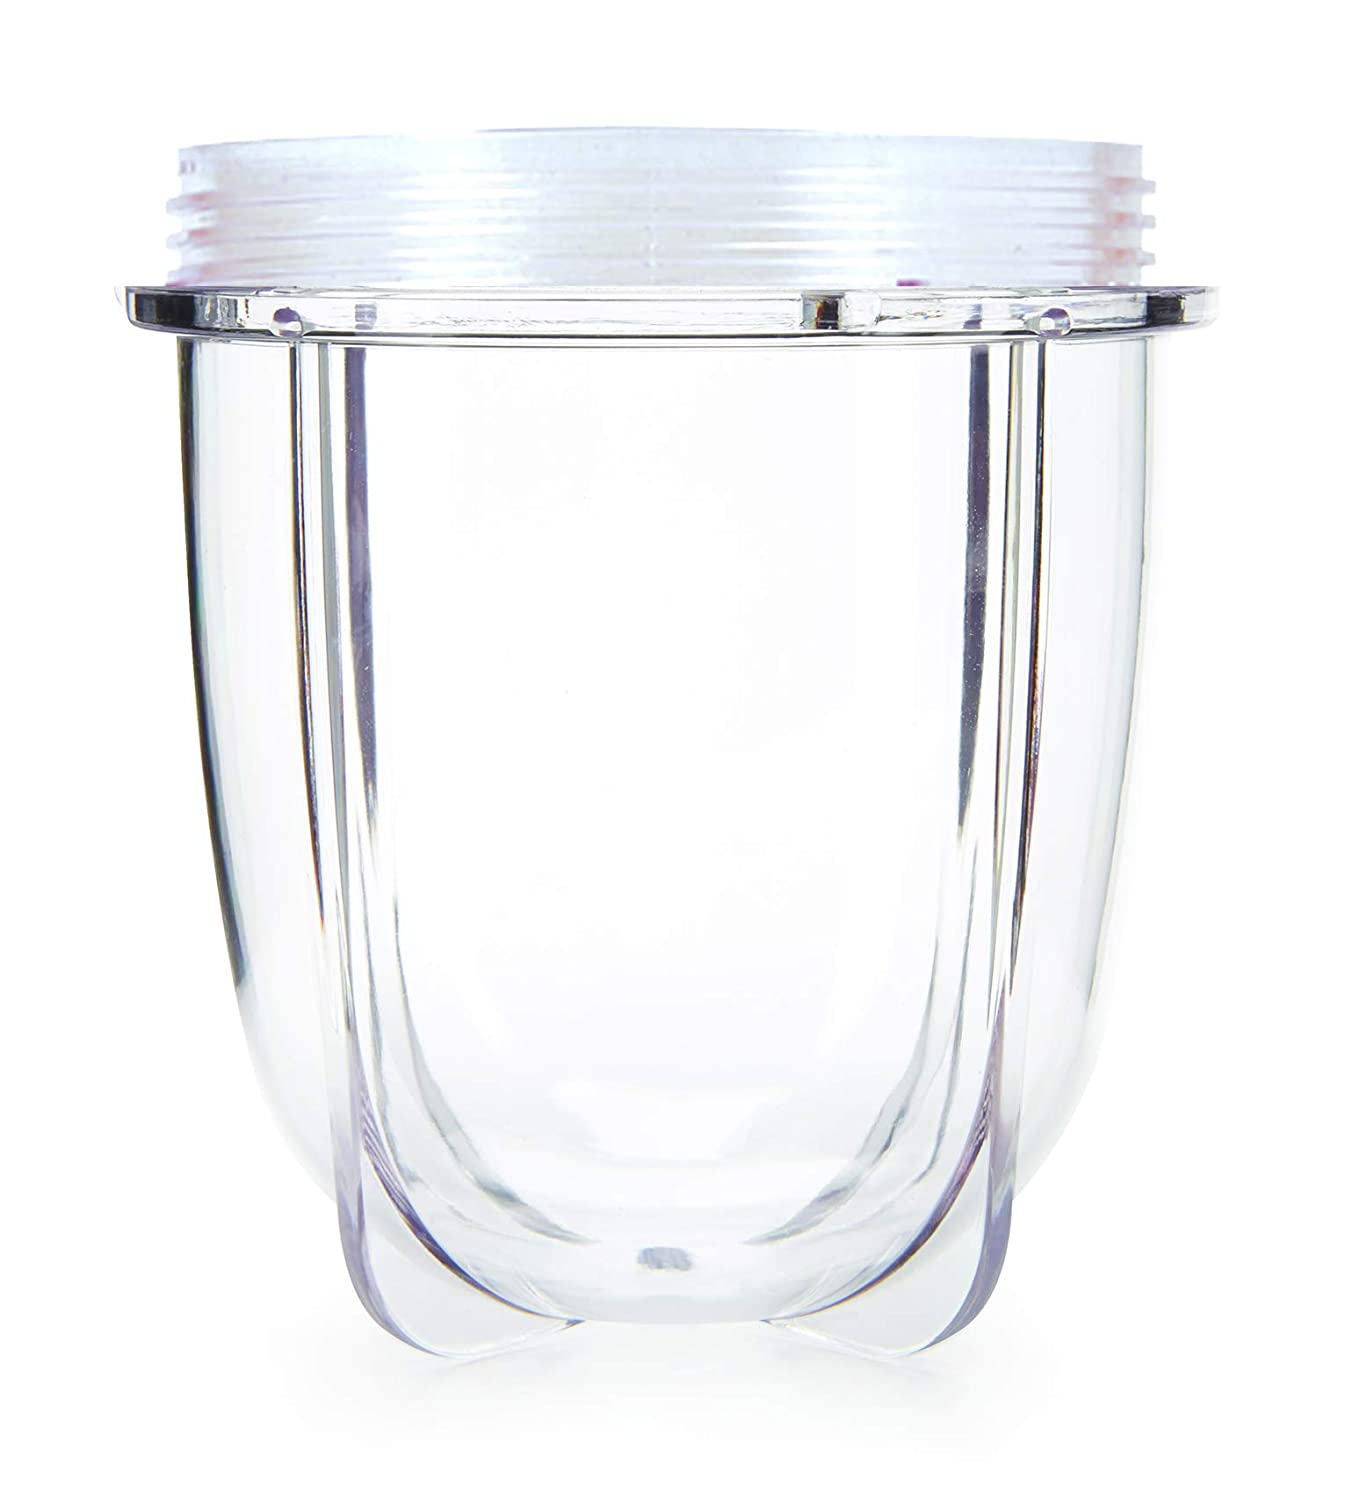 Nutribullet MBM-VE052RV Vaso Corto, Transparente: Amazon.es: Hogar